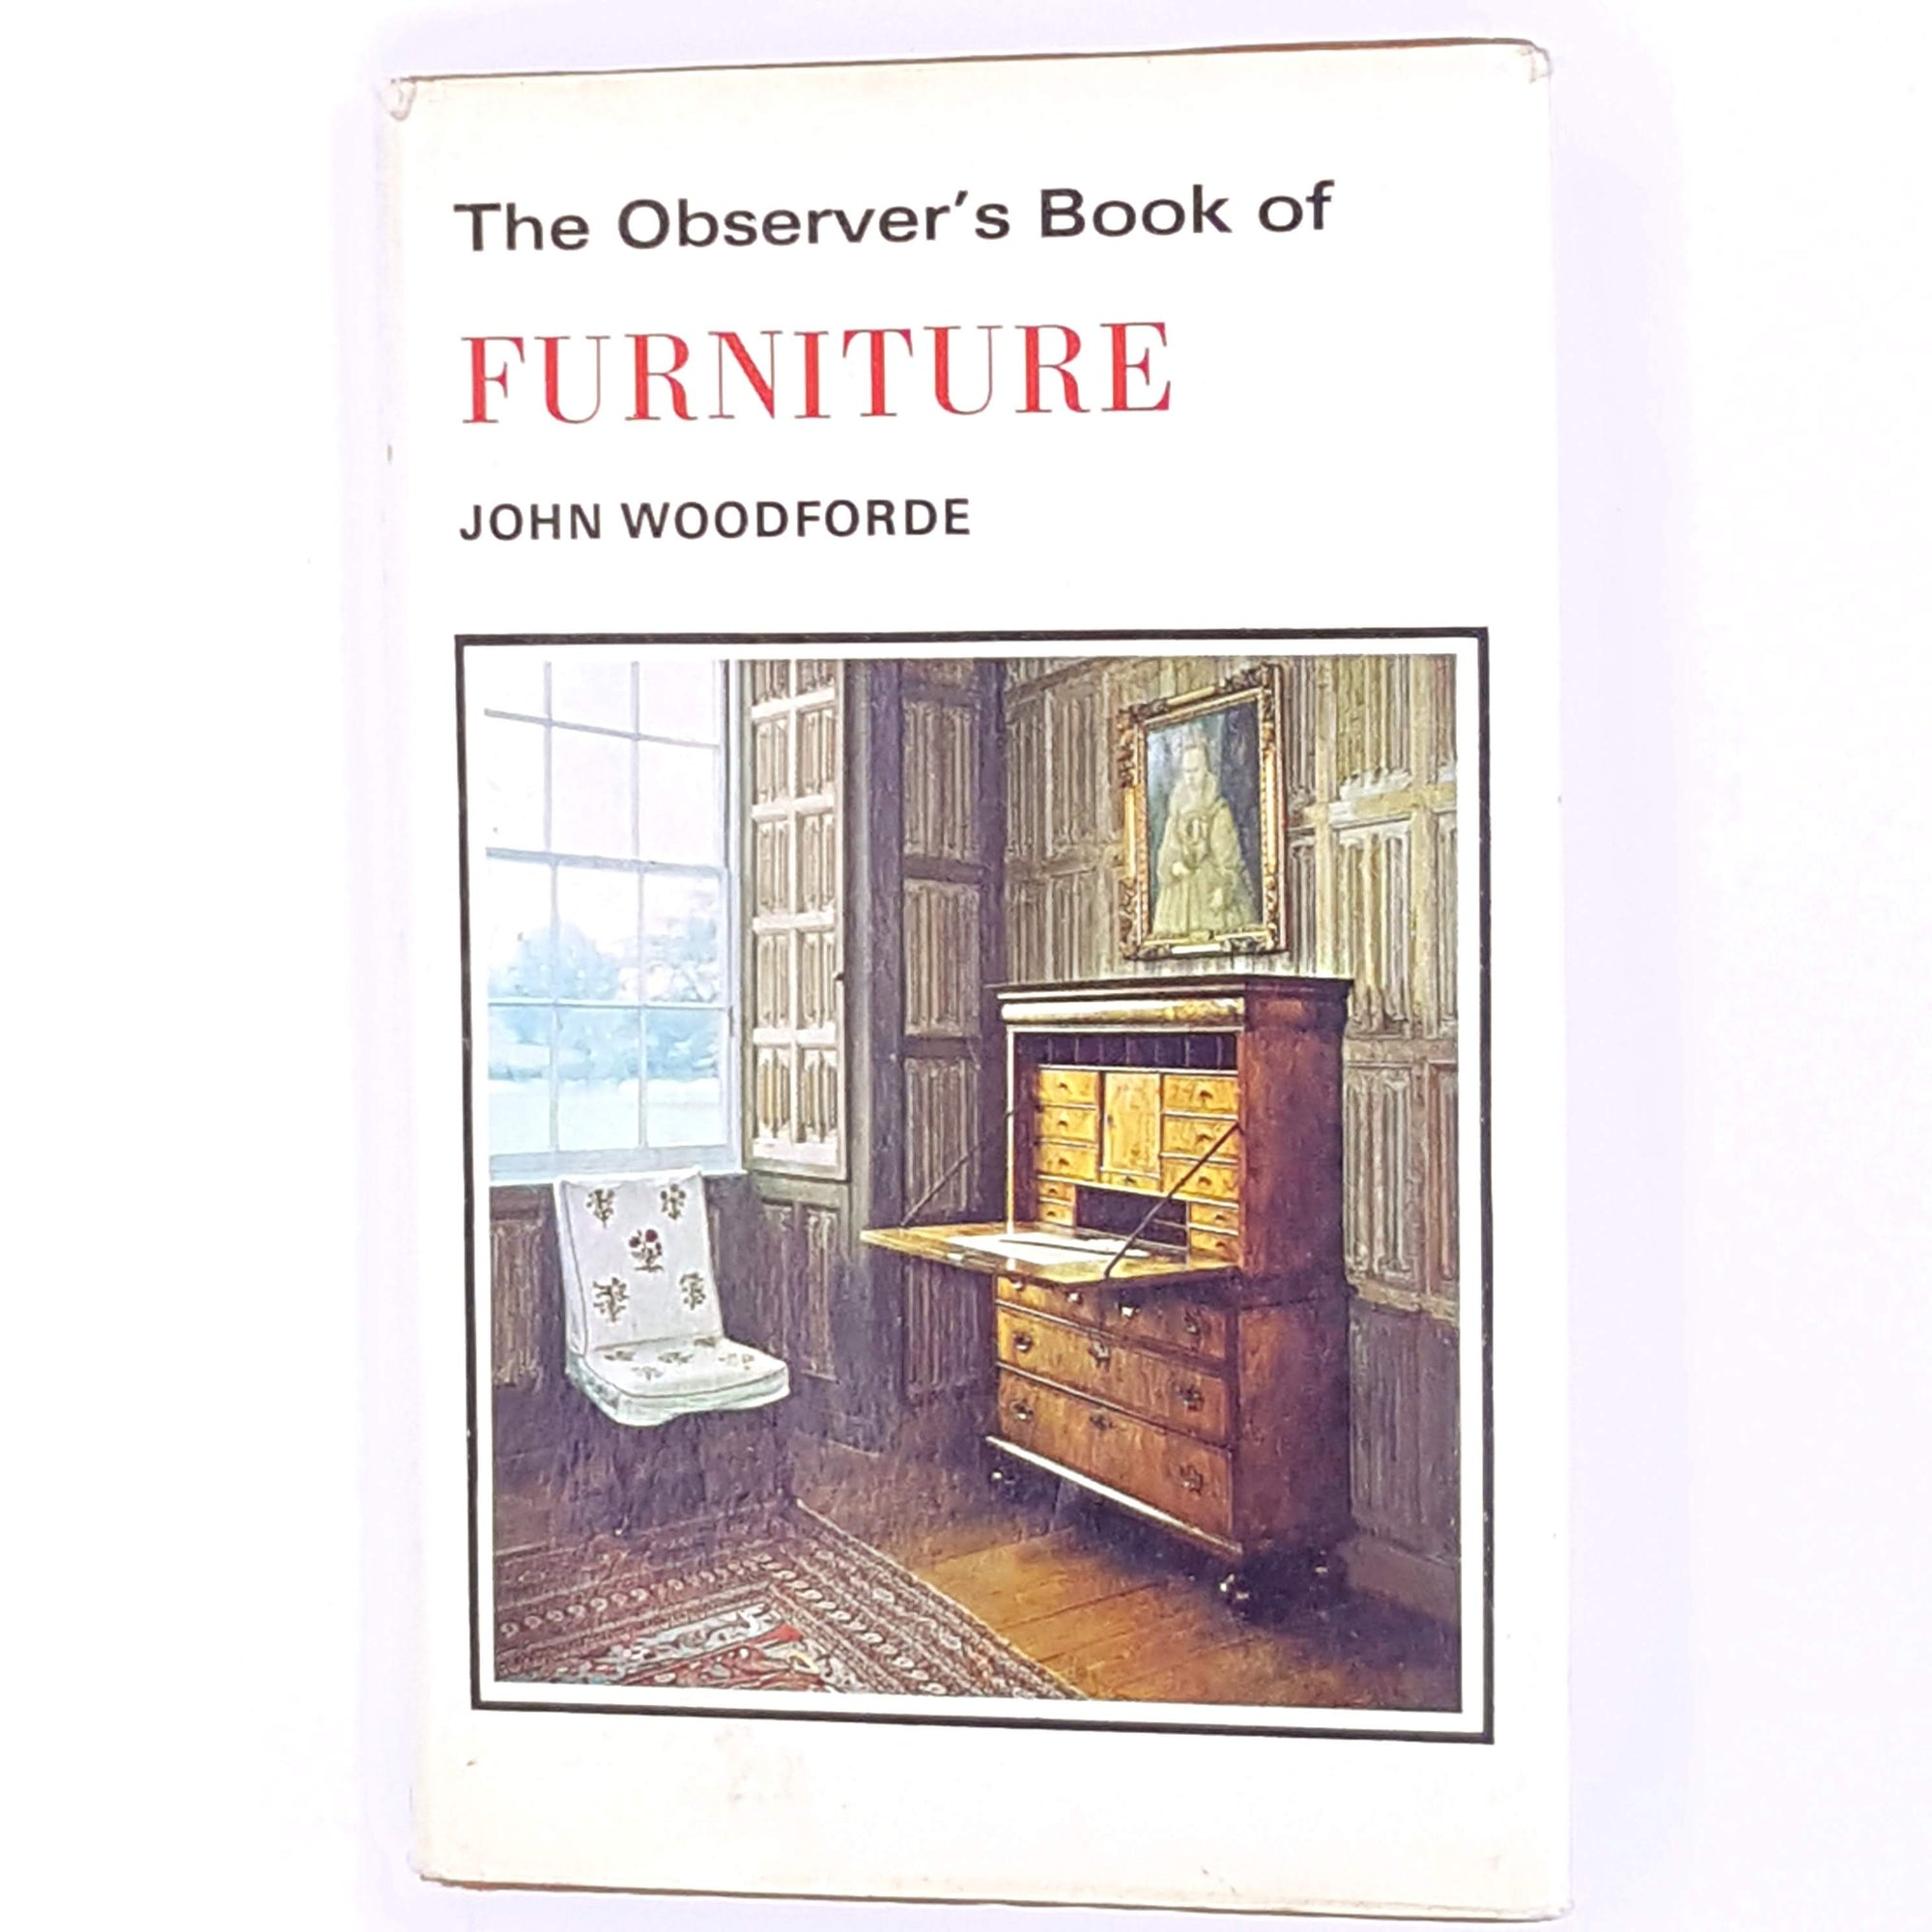 antique-decorative-frederick-warne-country-house-library-patterned-old-john-woodforde-classic-thrift-observer-books-1967-furniture-vintage-illustrated-